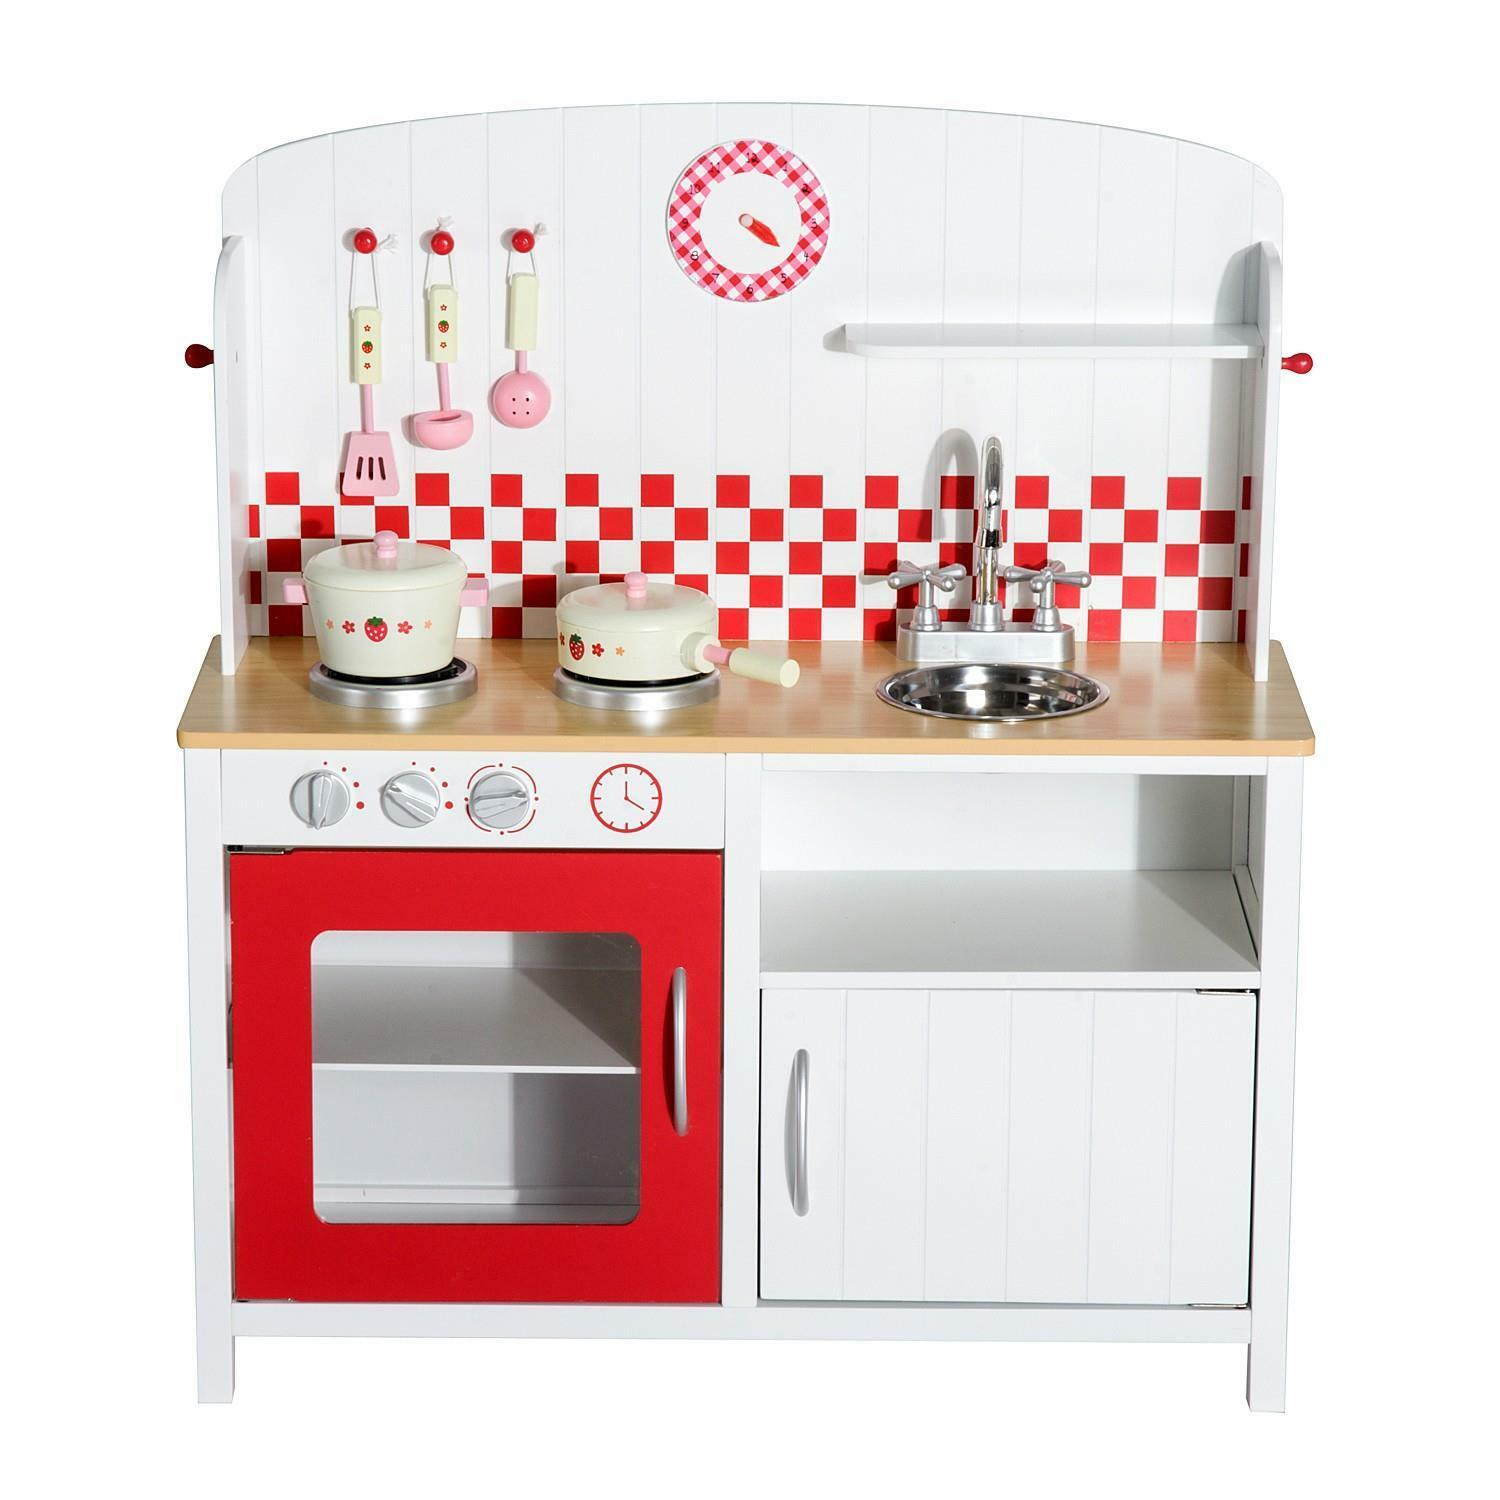 Kids Kitchen Kitchen Kitchen Role Play Set -White Red Wooden e8c608